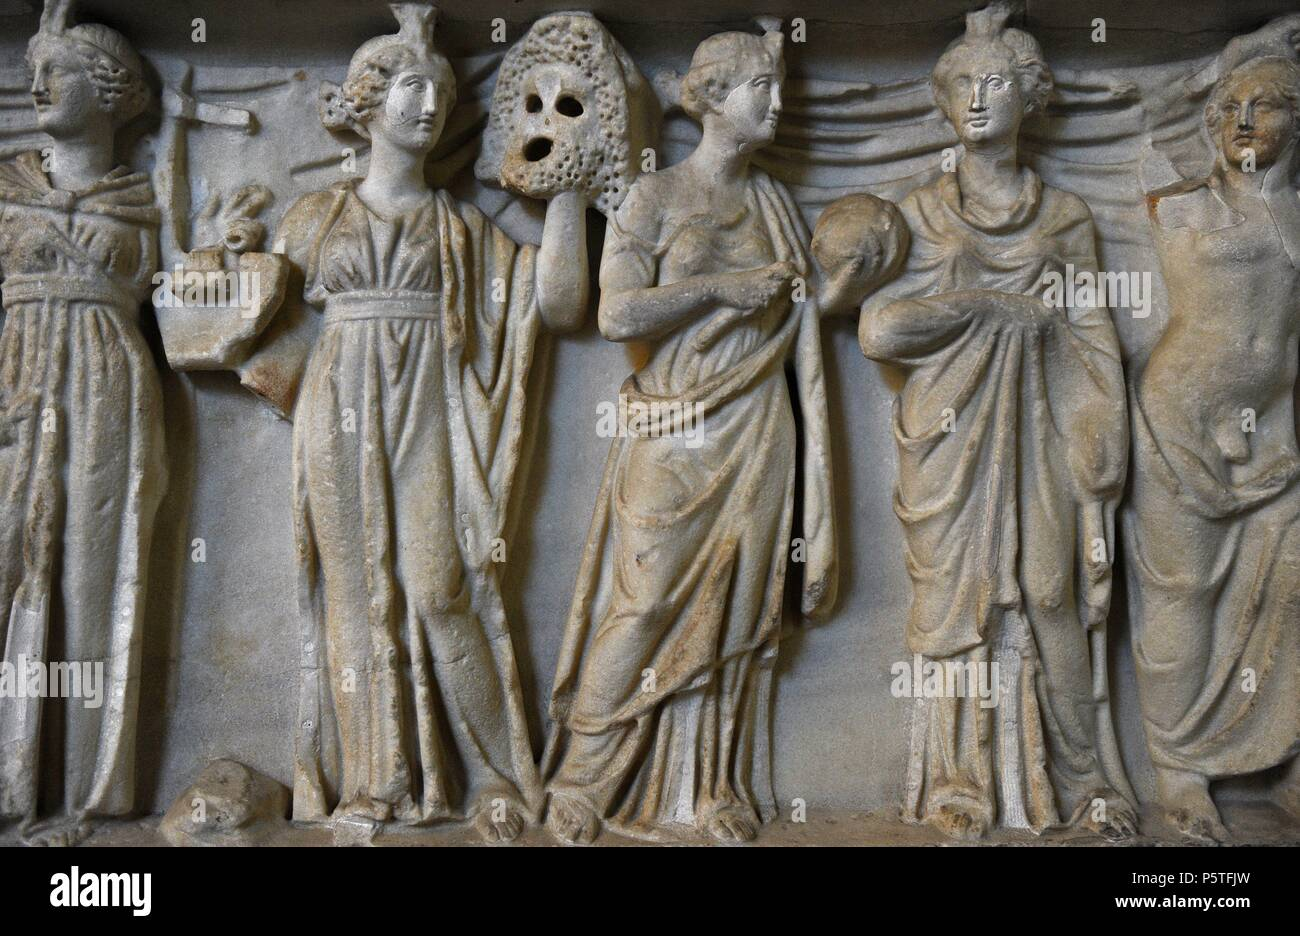 Roman sarcophagus. About 180 AD.  Goddess Athena, God Apollo and the nine Muses (goddesses of the inspiration of literature, science and the arts. Reliefs. Detail. Glyptothek. Munich. Germany. - Stock Image